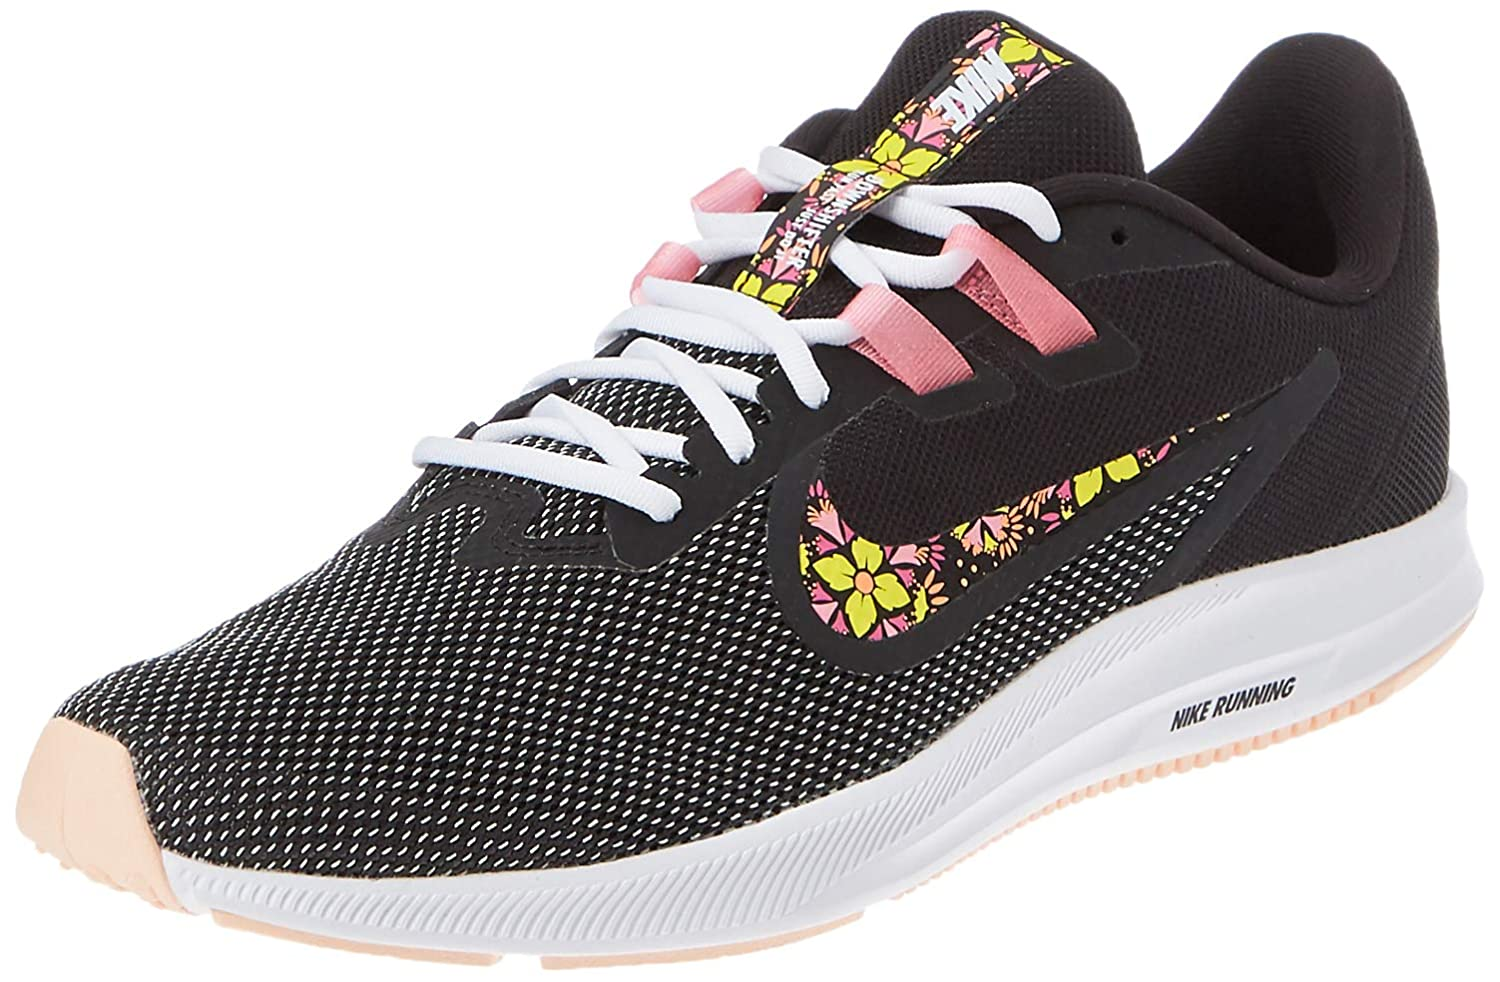 WMNS Downshifter 9 Se Running Shoes